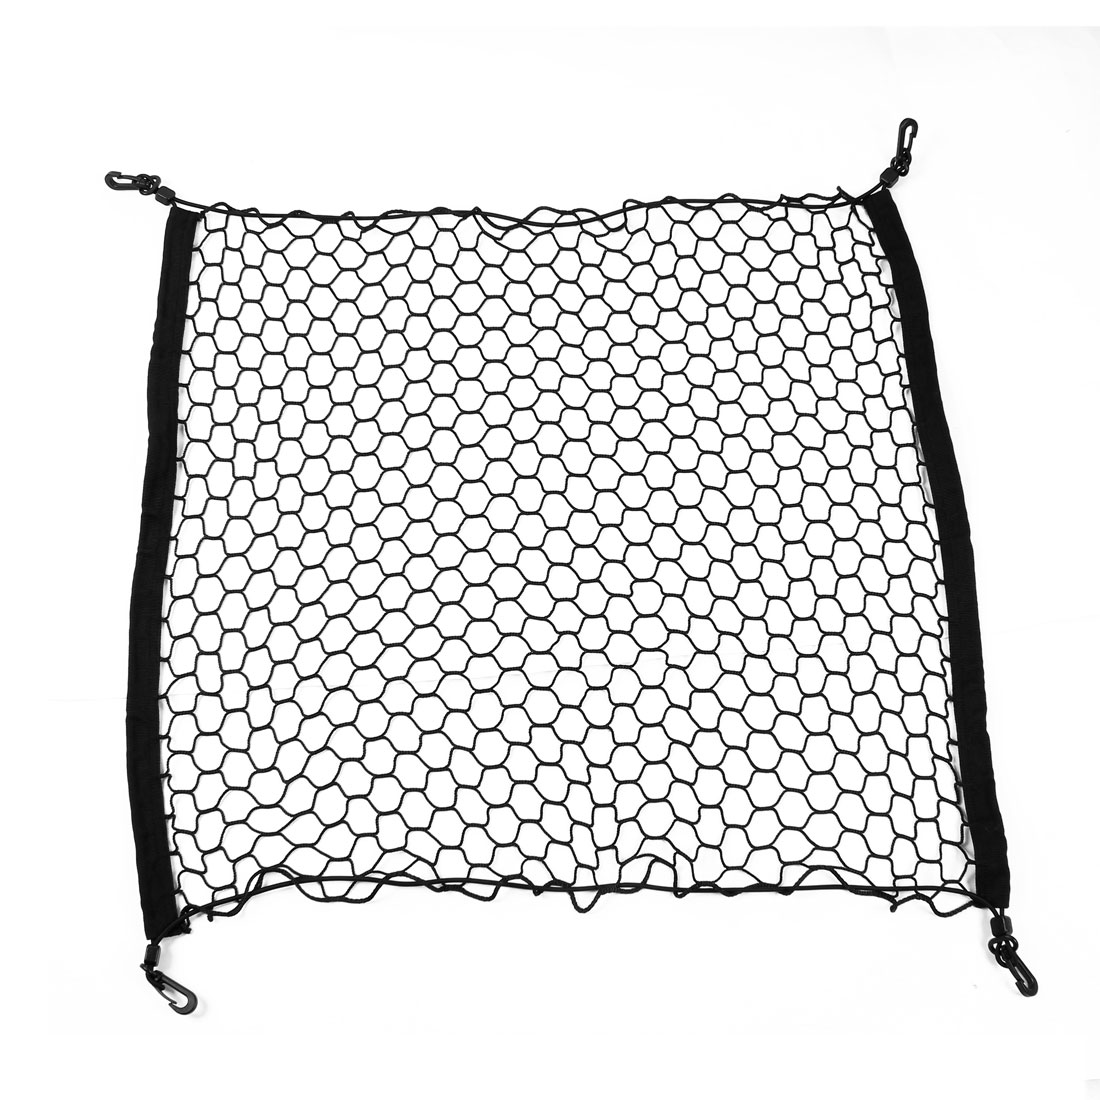 Elasticated Bungee Luggage Storage Car Cargo Net w Lobster Clasp